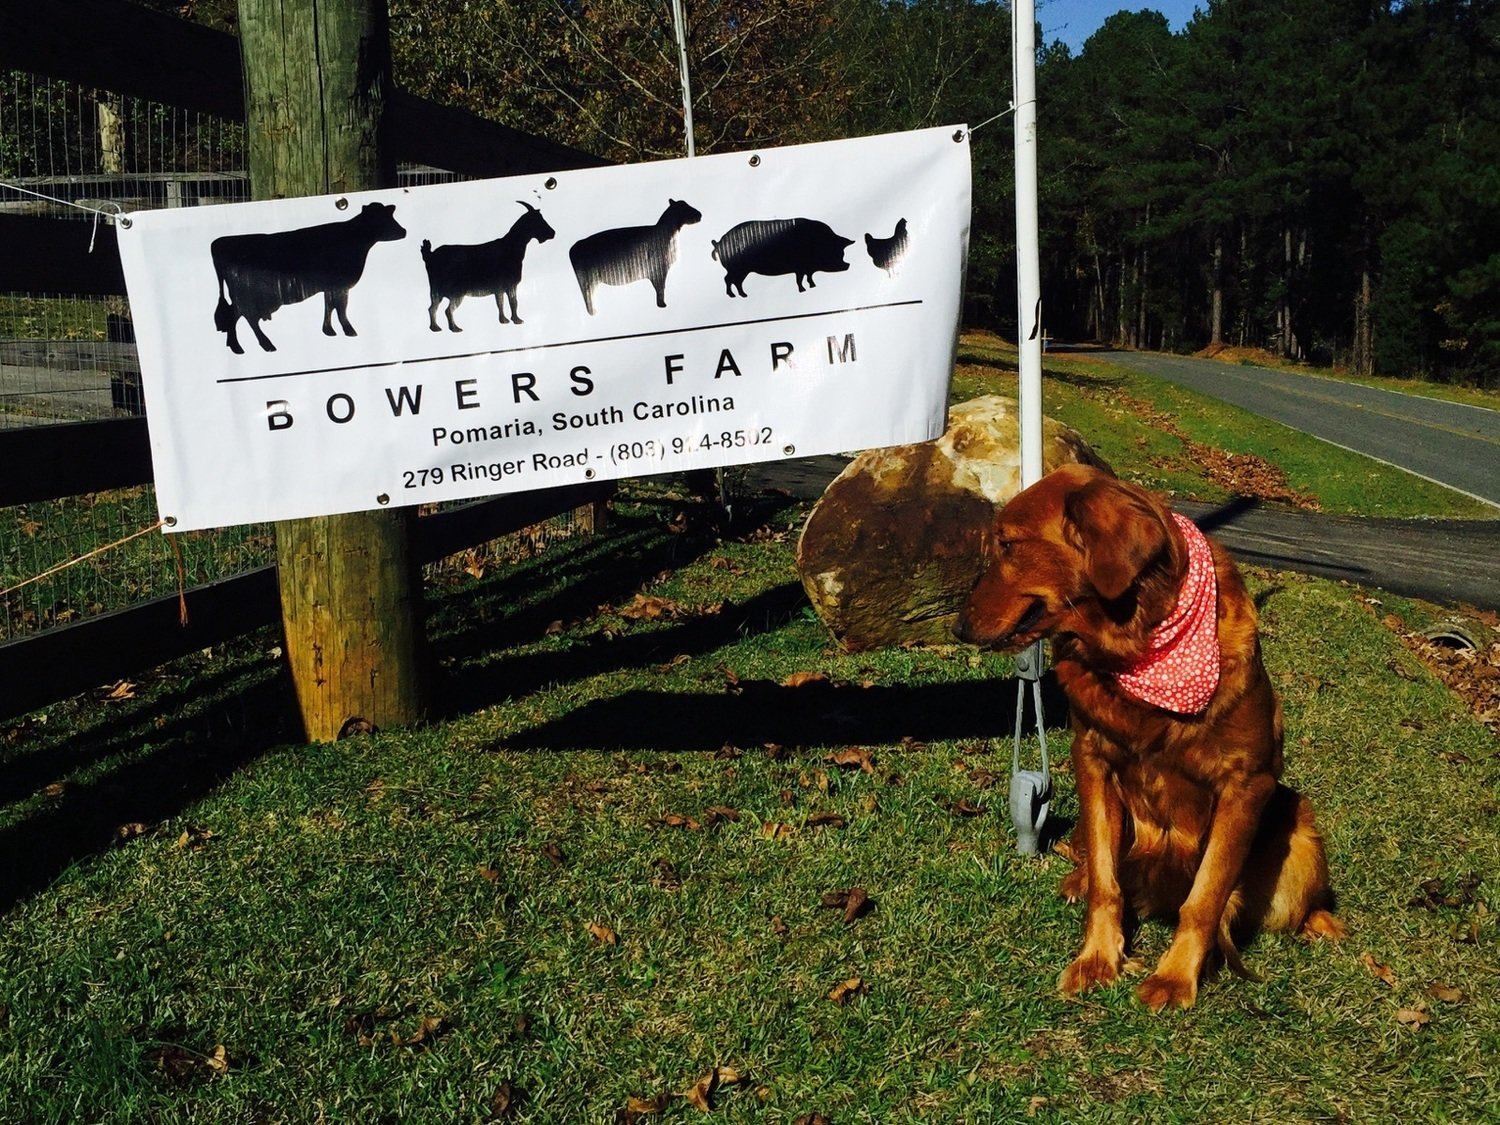 Bowers Farm Gift Certificates